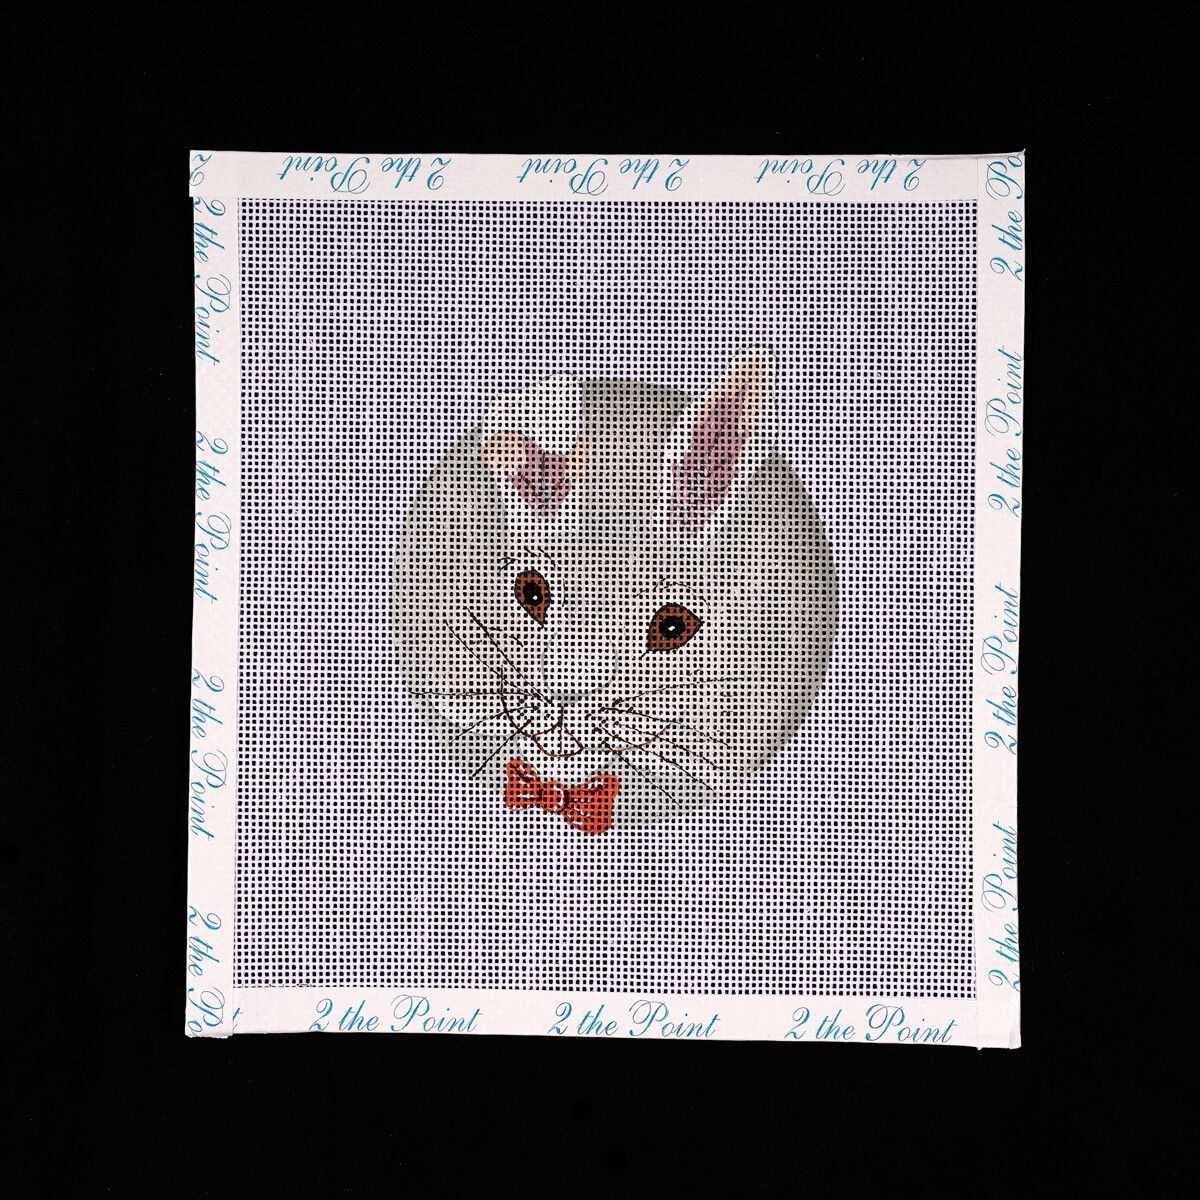 Unknown Designer, Bunny with Bow Tie Ornament